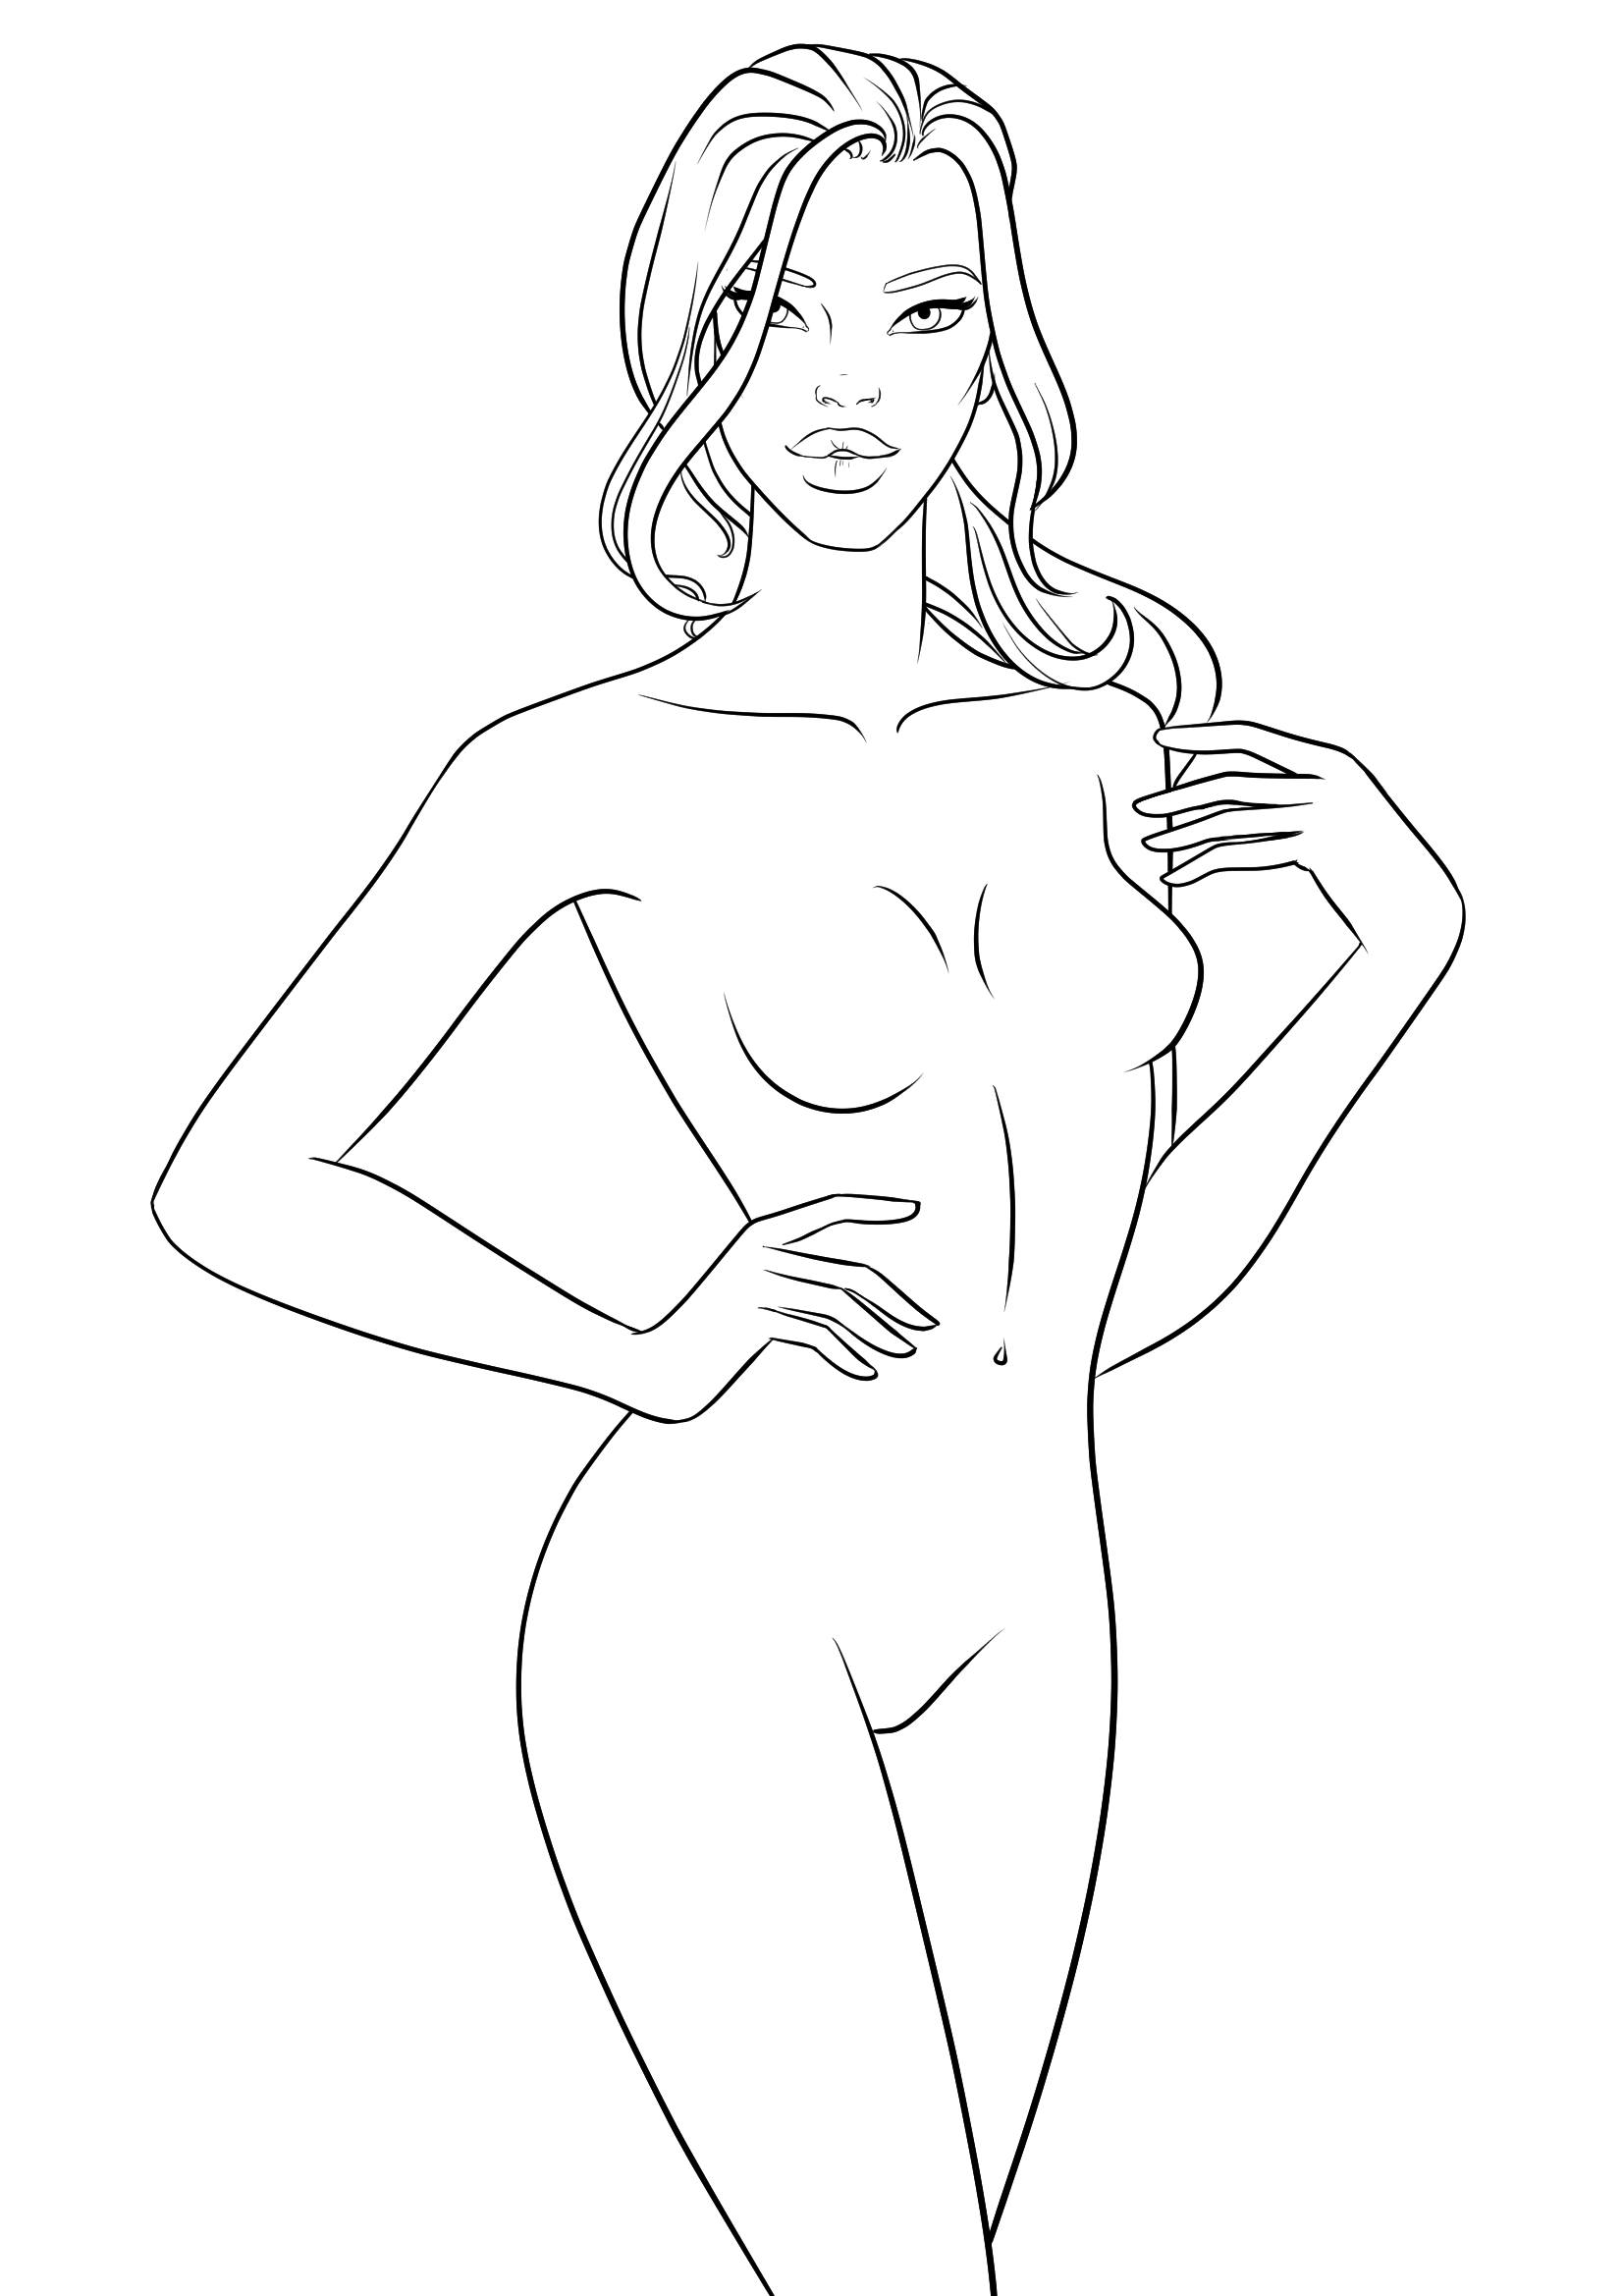 Human Figure Drawing Template at GetDrawings.com | Free for personal ...